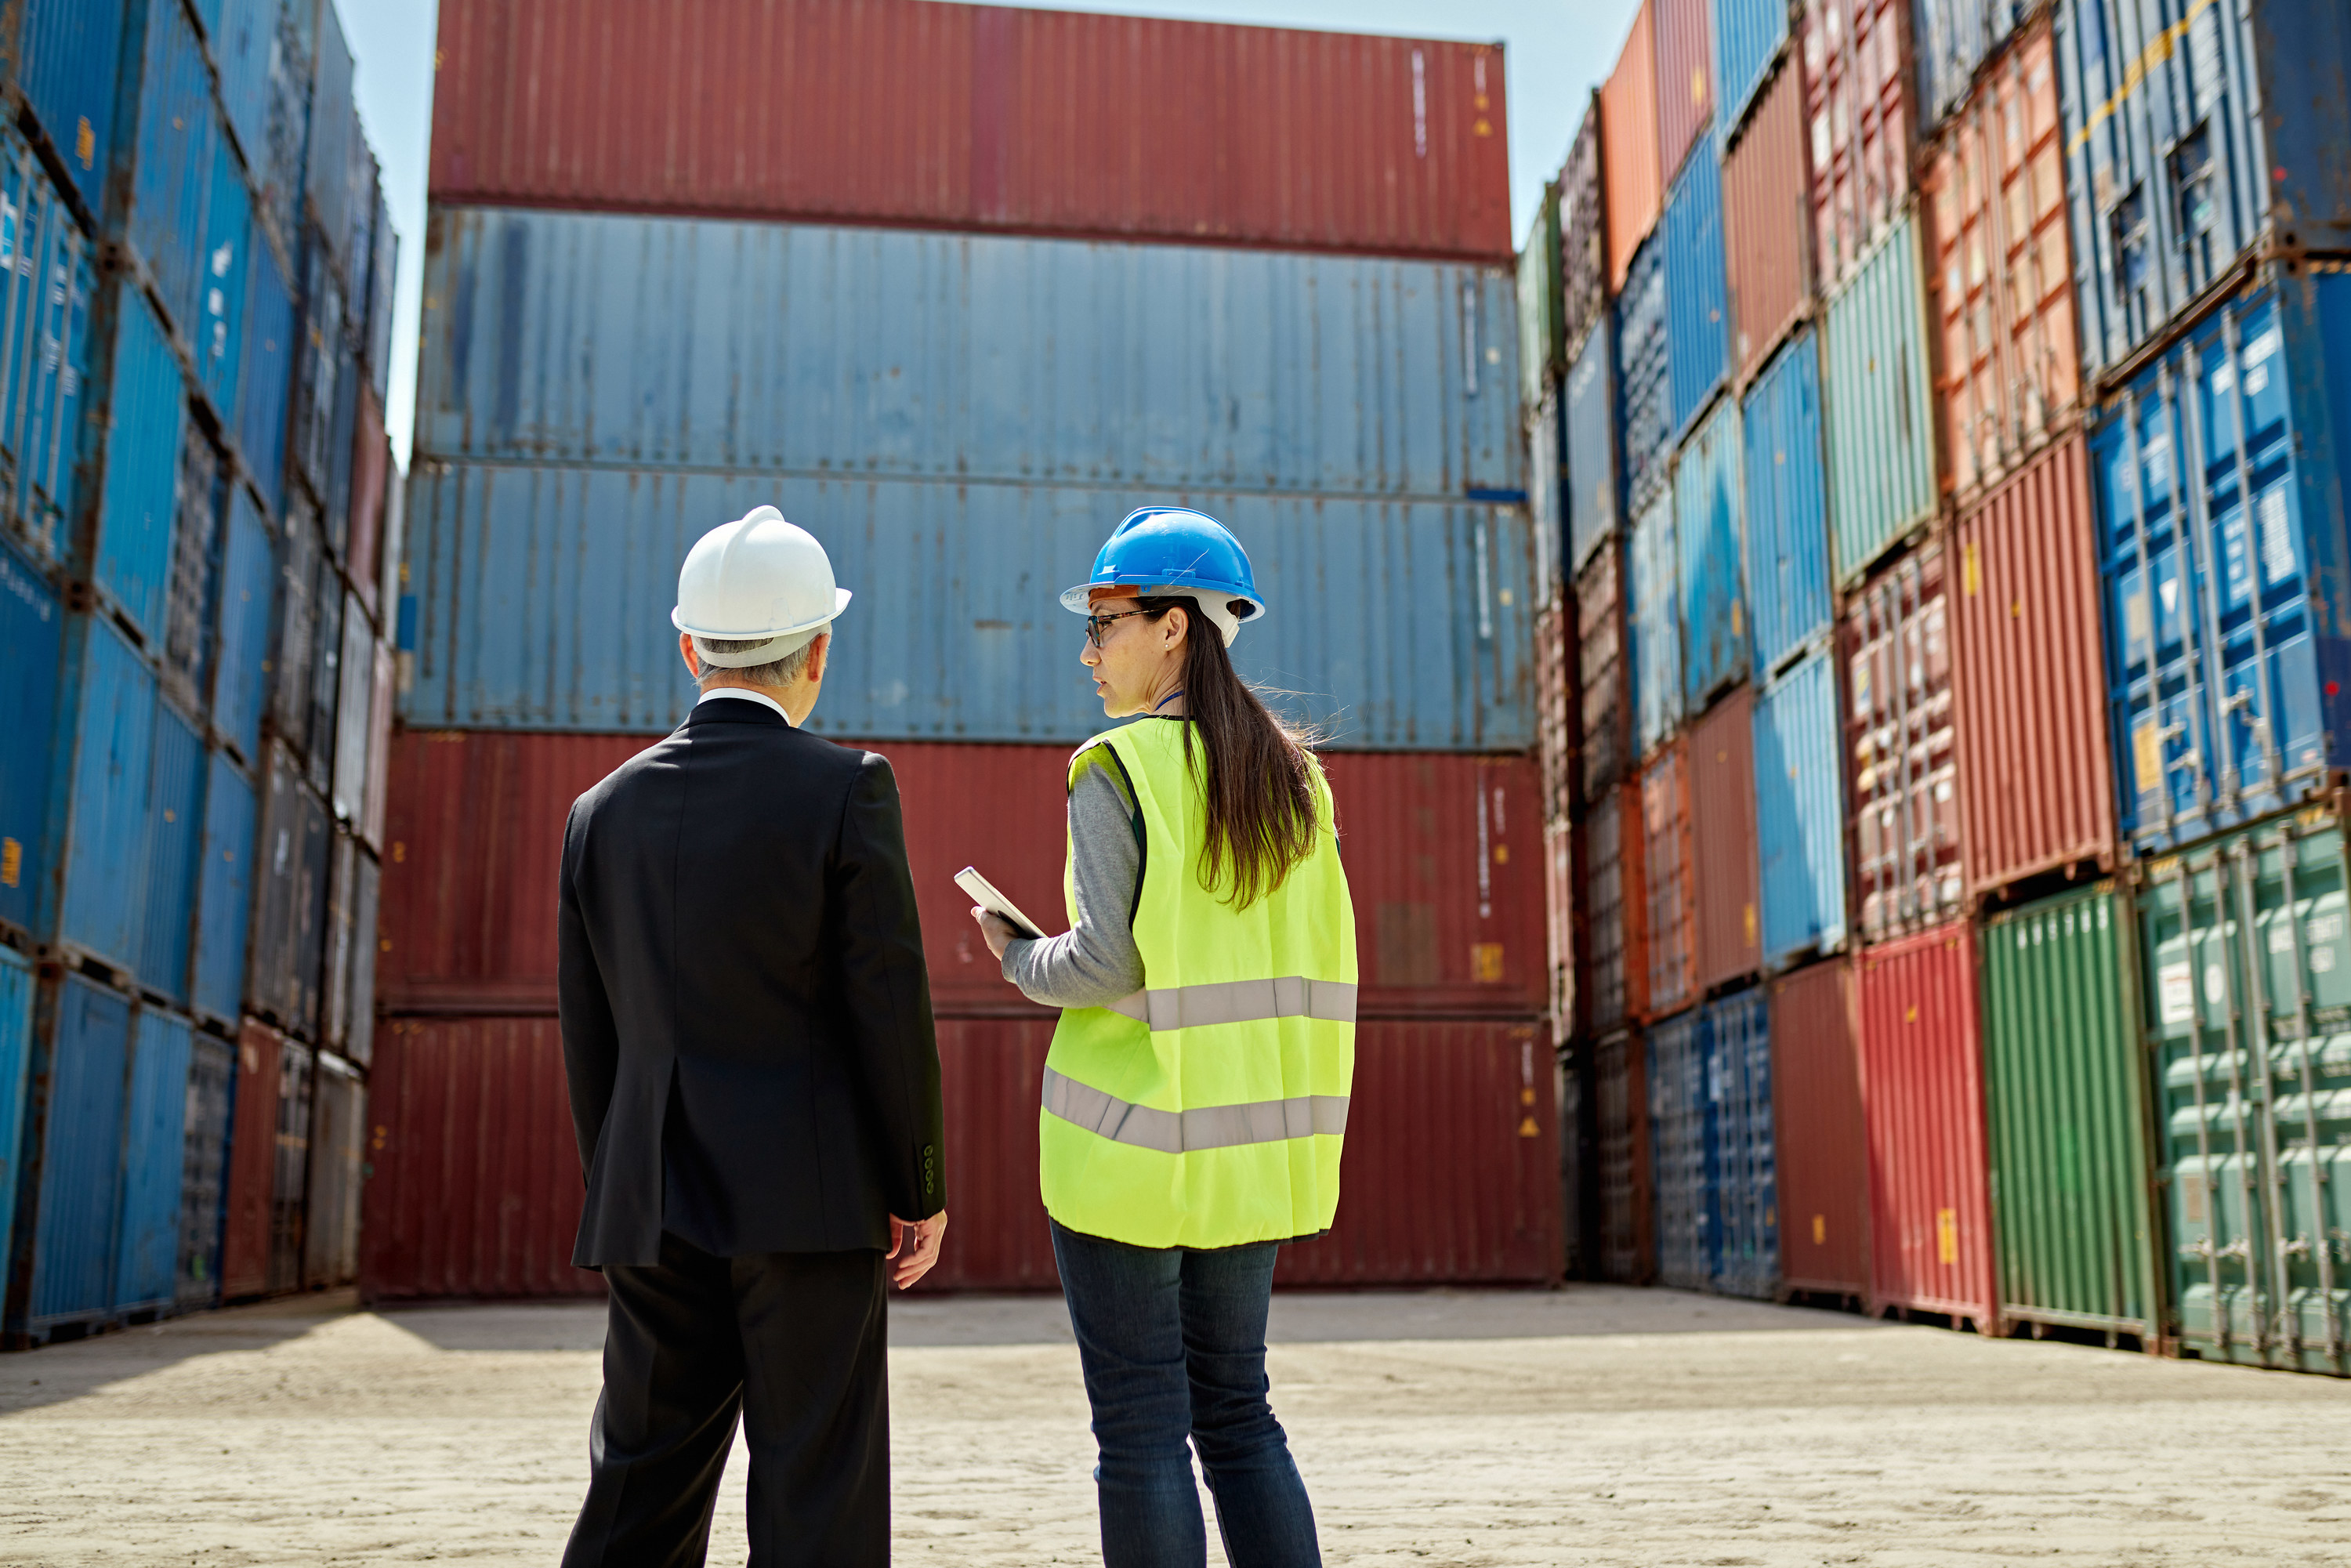 Logistics managers having a conversation in front of large shipping containers